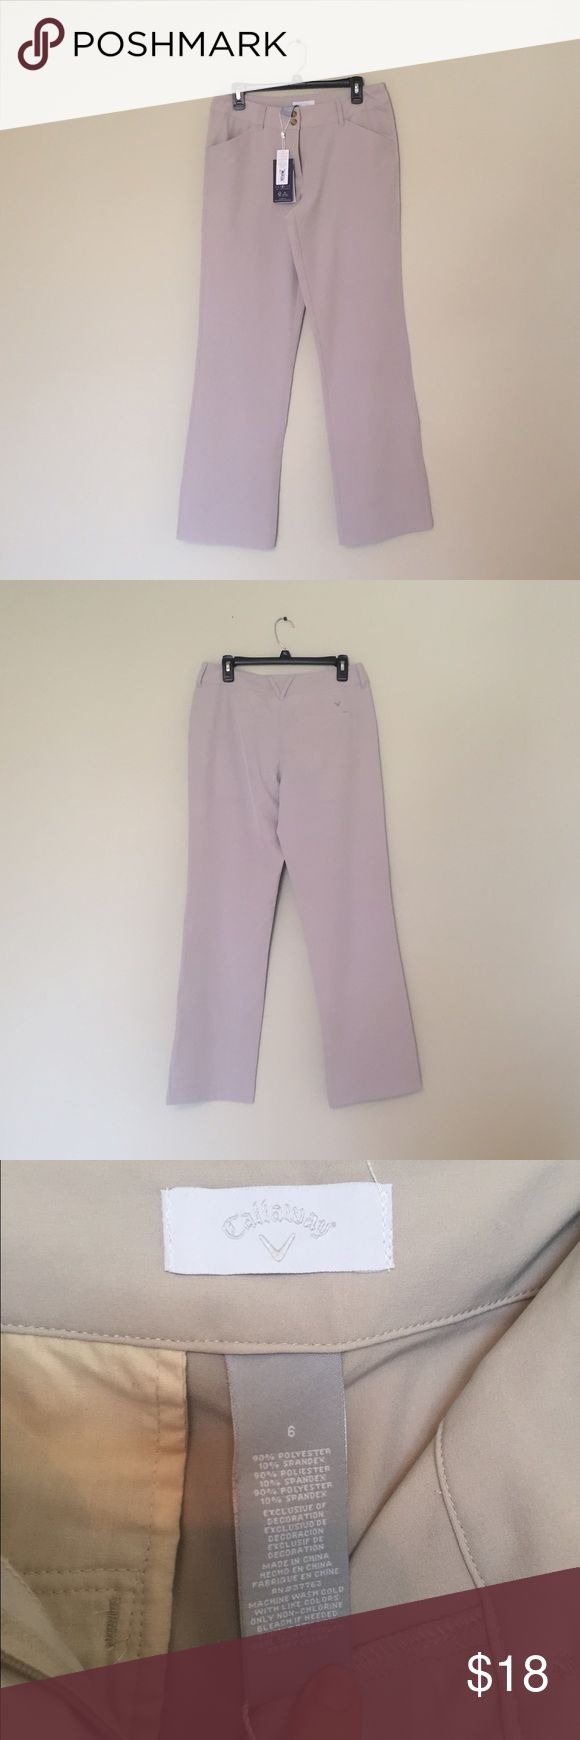 ⚡CLOSET SALE⚡️Callaway Dress Pants These are NWT and are perfect for any occasion especially for work or dressy occasions. They are a great light cream color. Listed cheaper on Ⓜ with free shipping! Pants Trousers